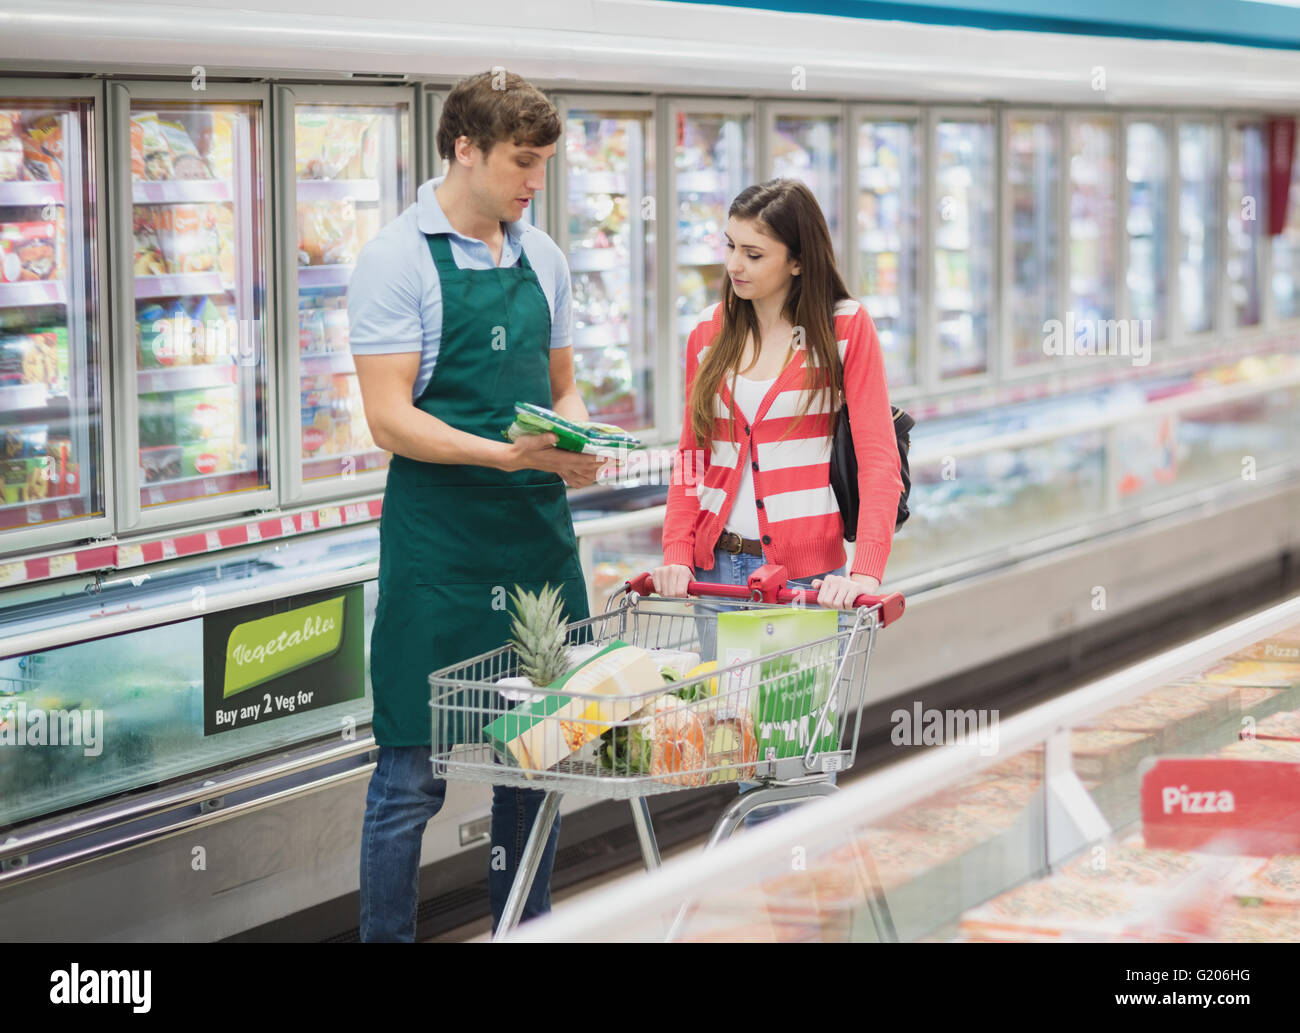 A man grocer advising his customer - Stock Image